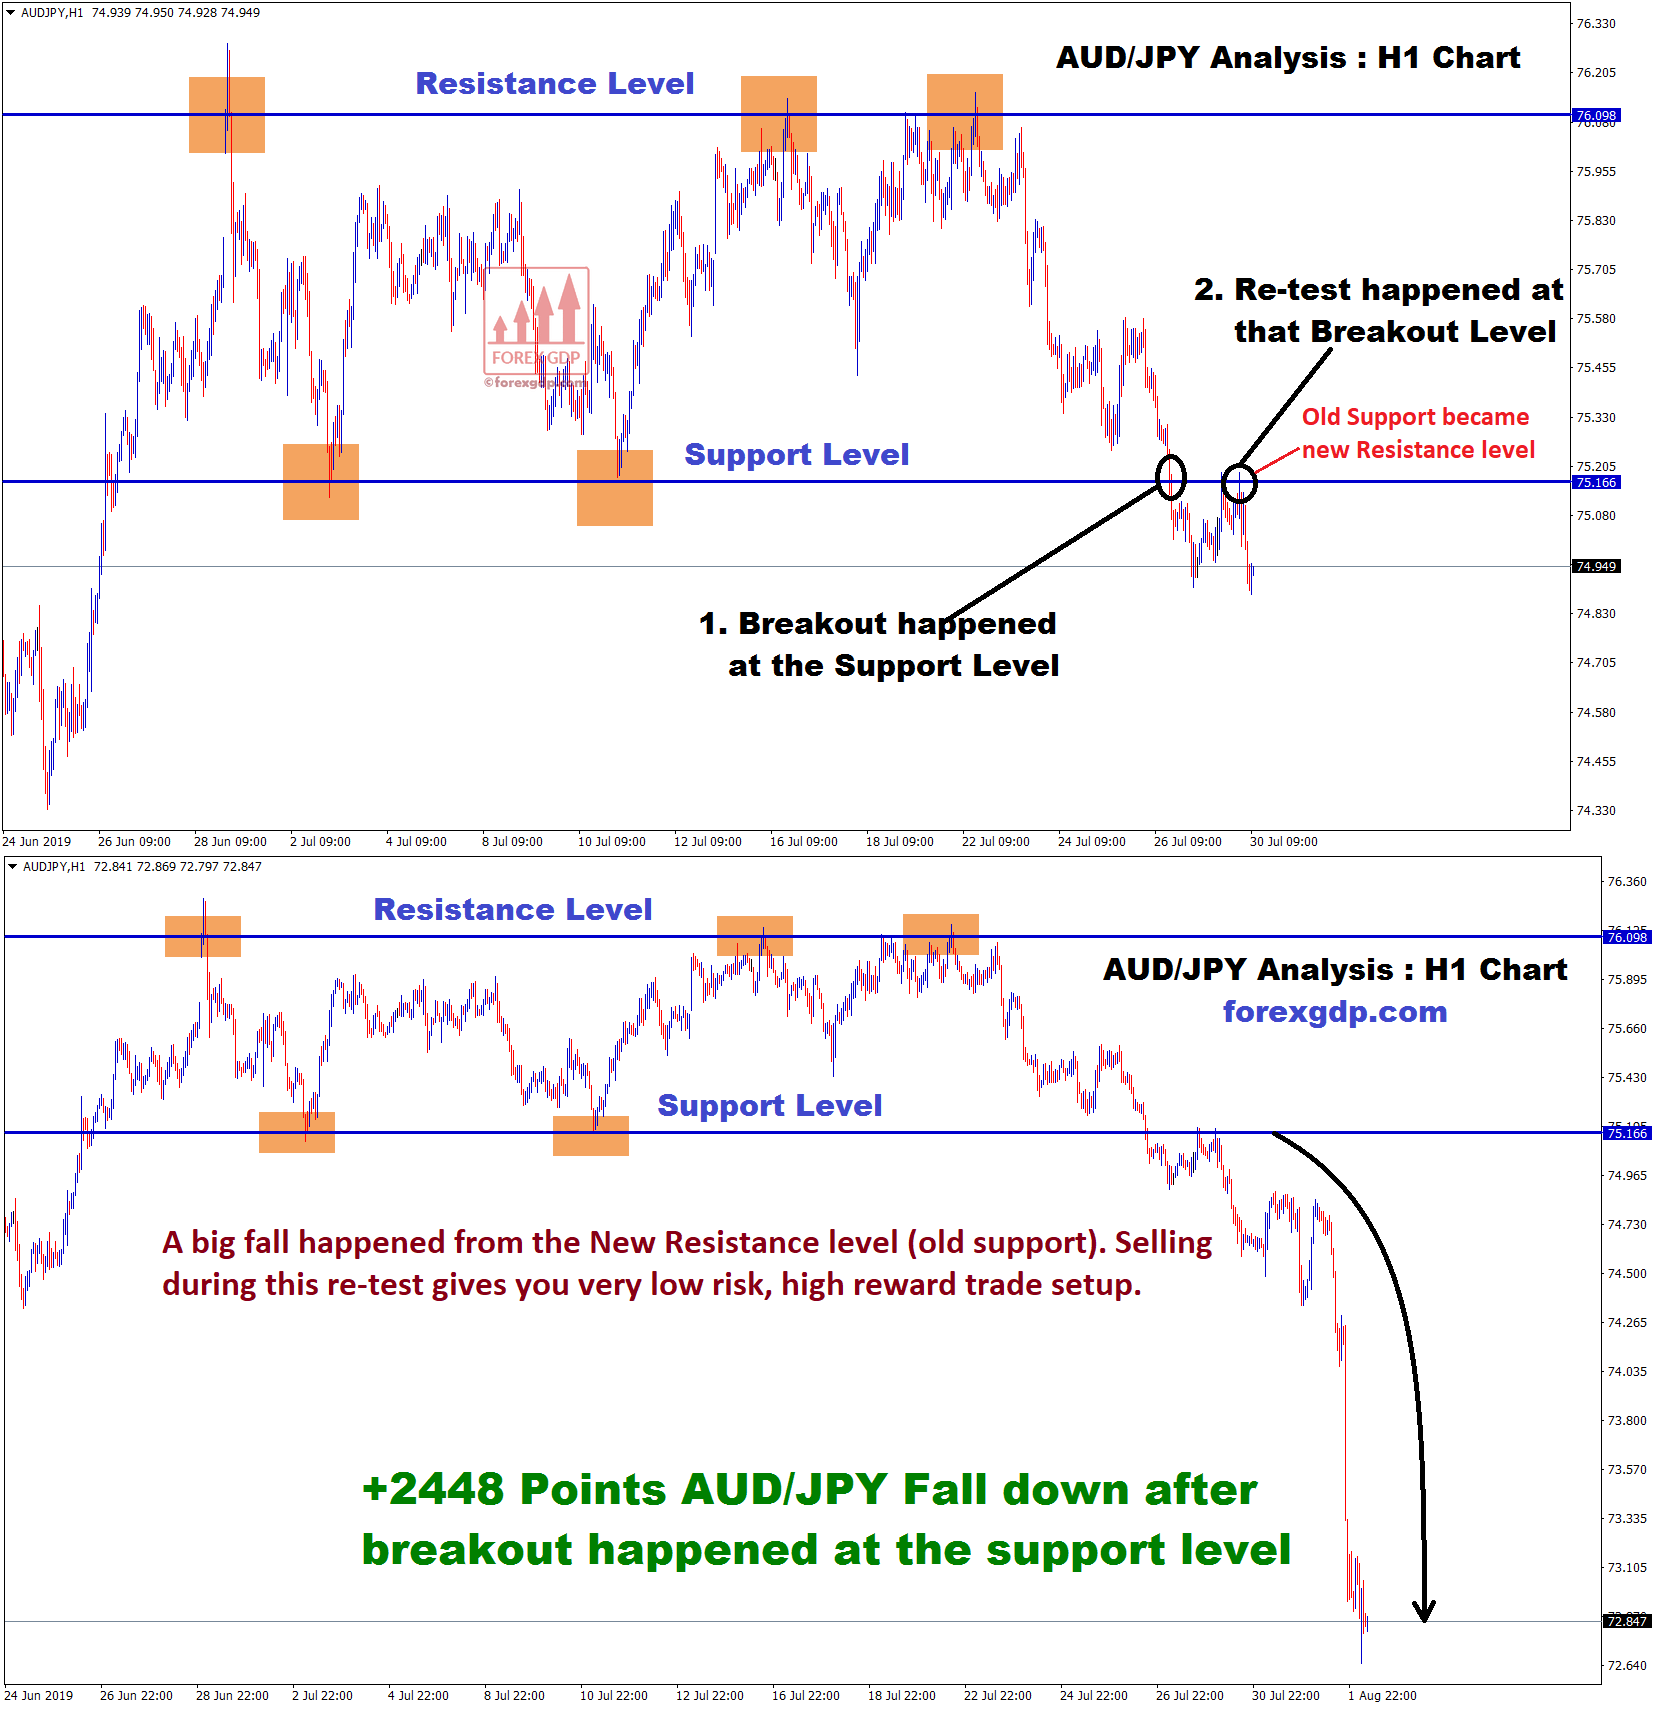 old support becomes new ressitance level in audjpy 1 hour